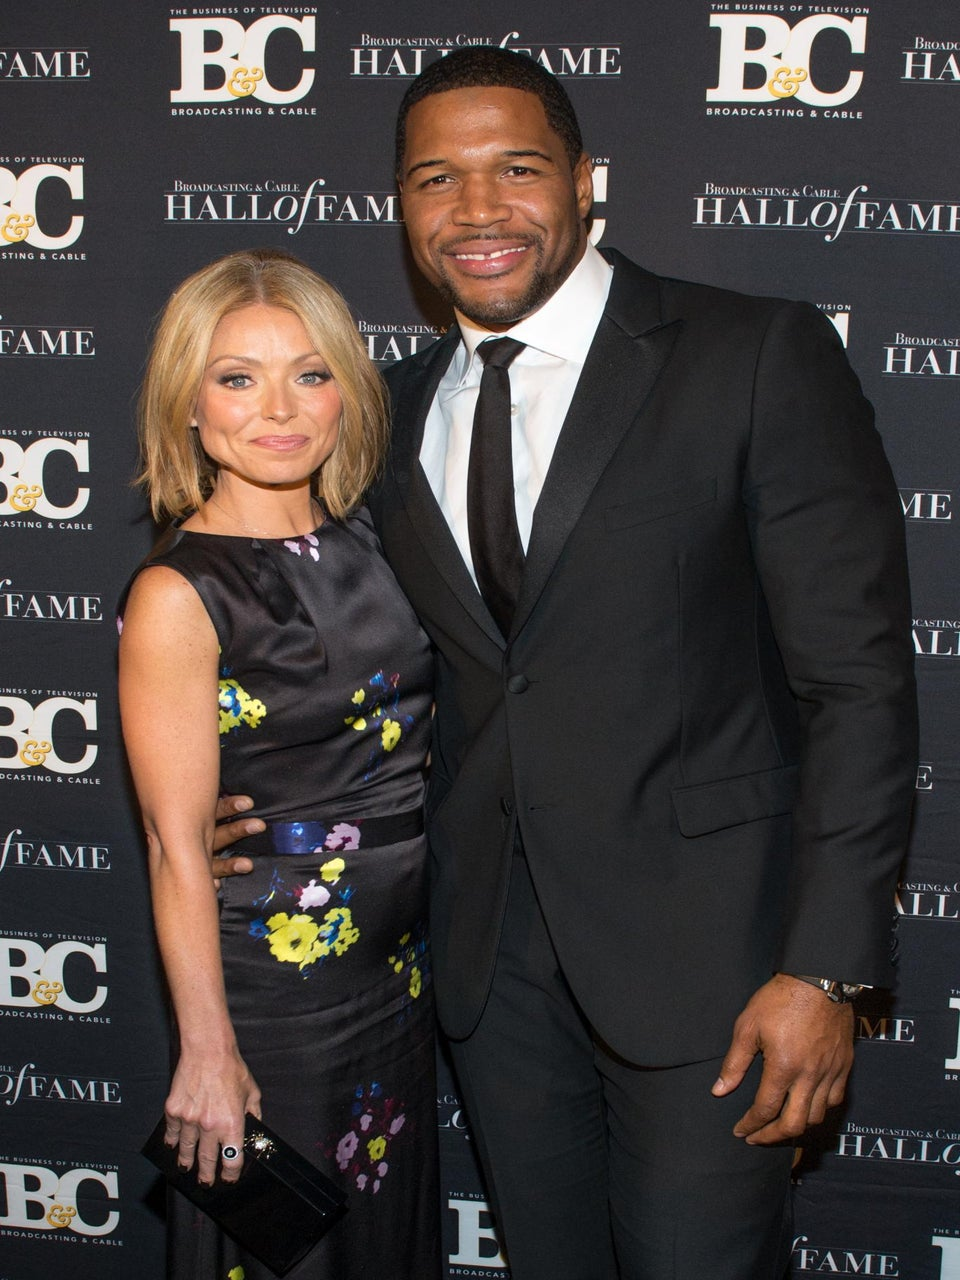 Kelly Ripa is a No Show for 'Live' After Strahan Announcement